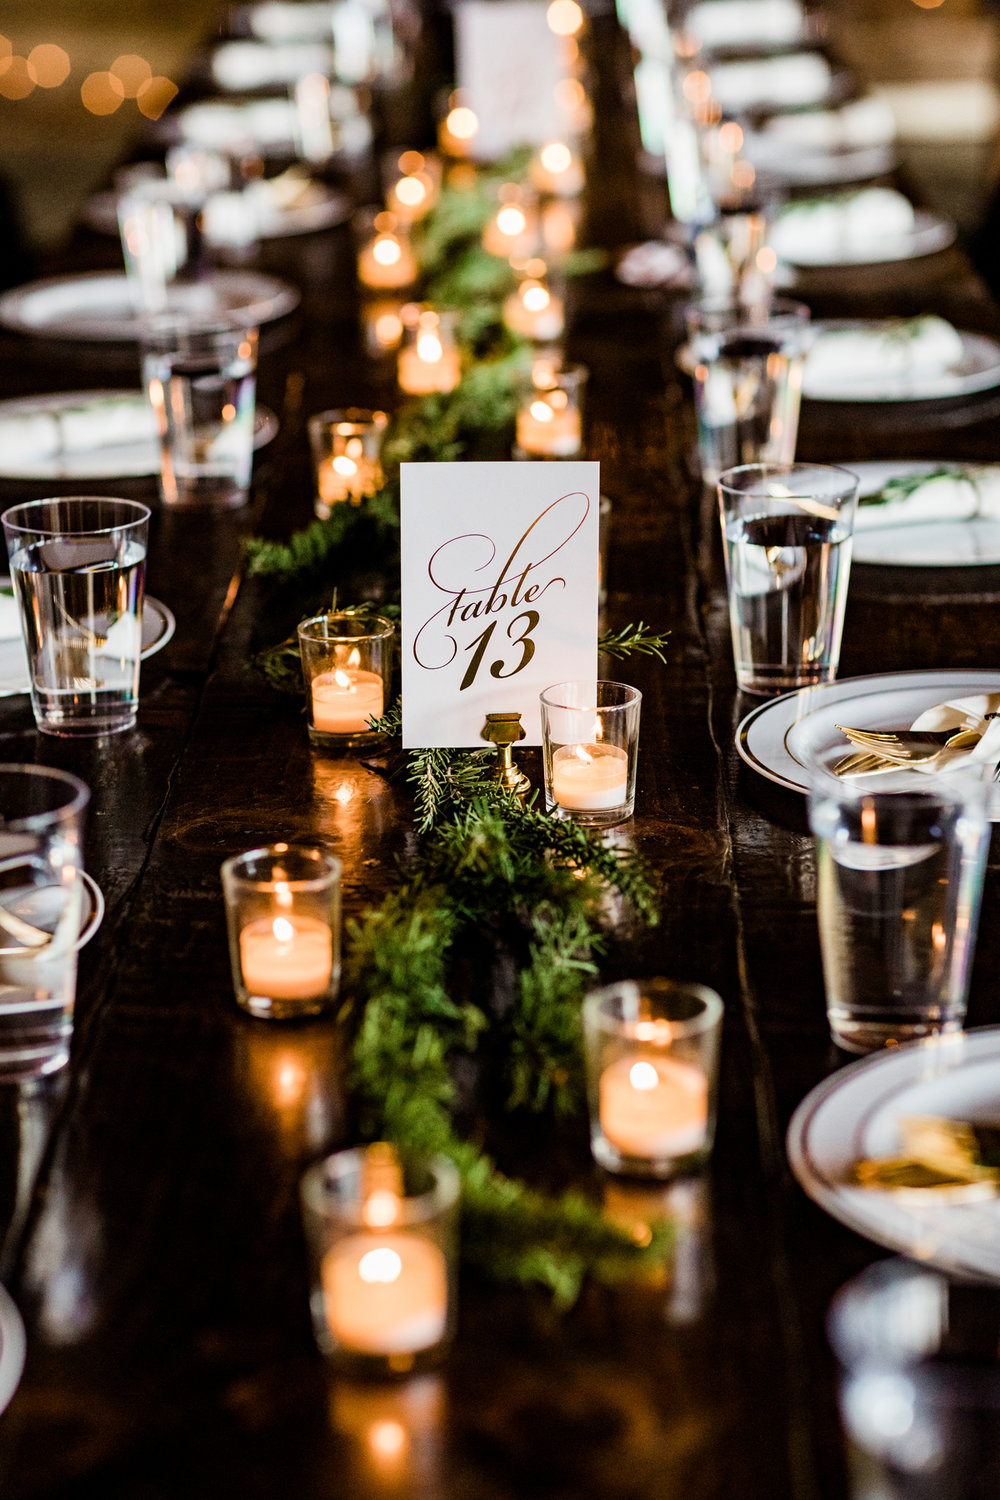 DO: More candles over more flowers. Flower costs can add up very fast. Candles are more affordable, they create such a cozy environment, and you can resell the votives after the wedding.